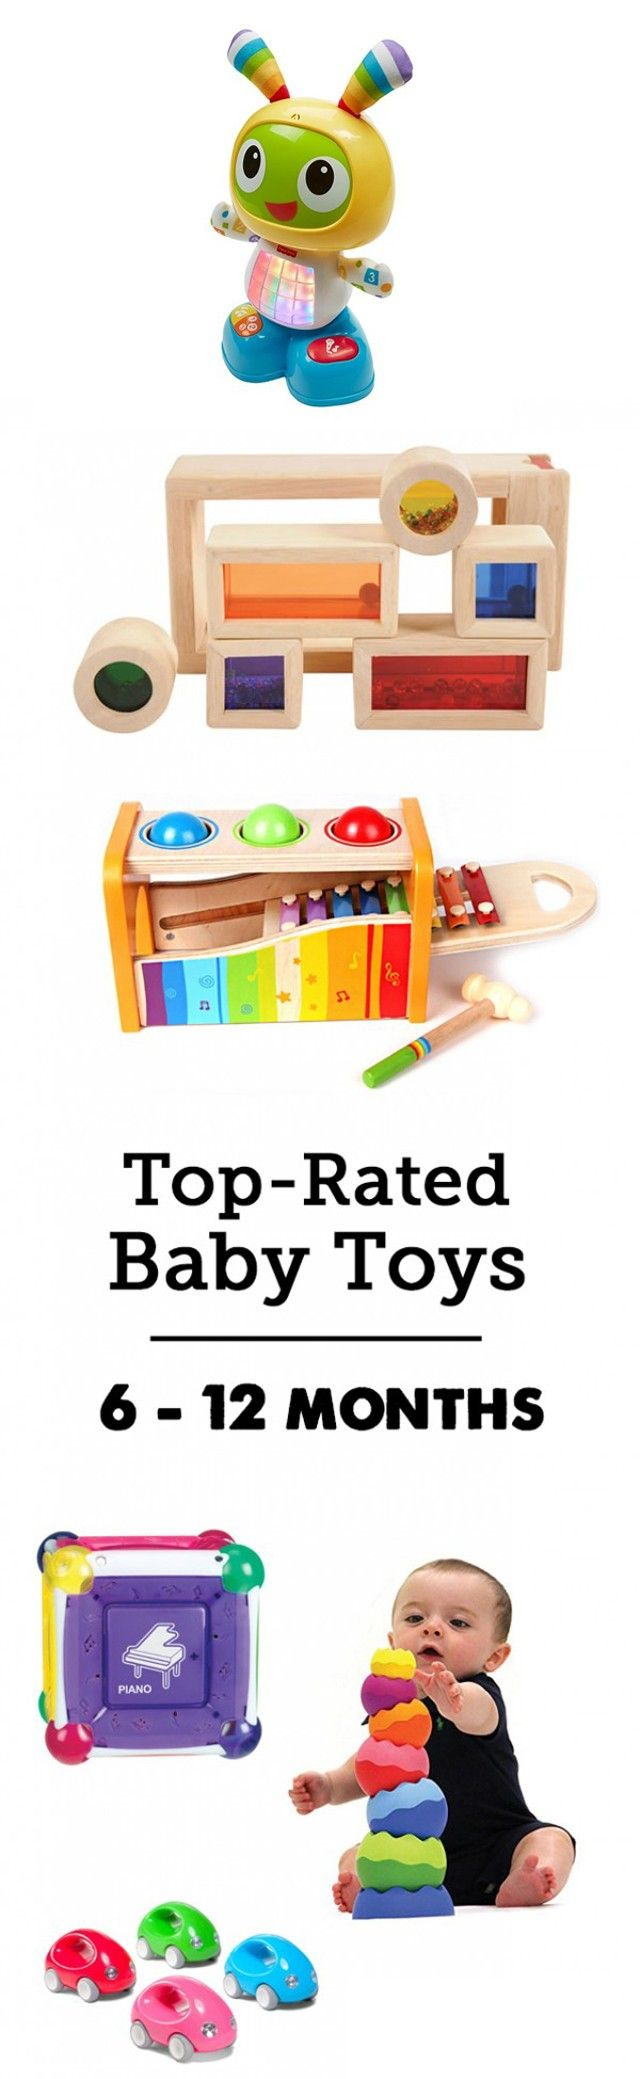 4 Year Old Developmental Toys : Mpmk gift guide snippet best gifts for month olds